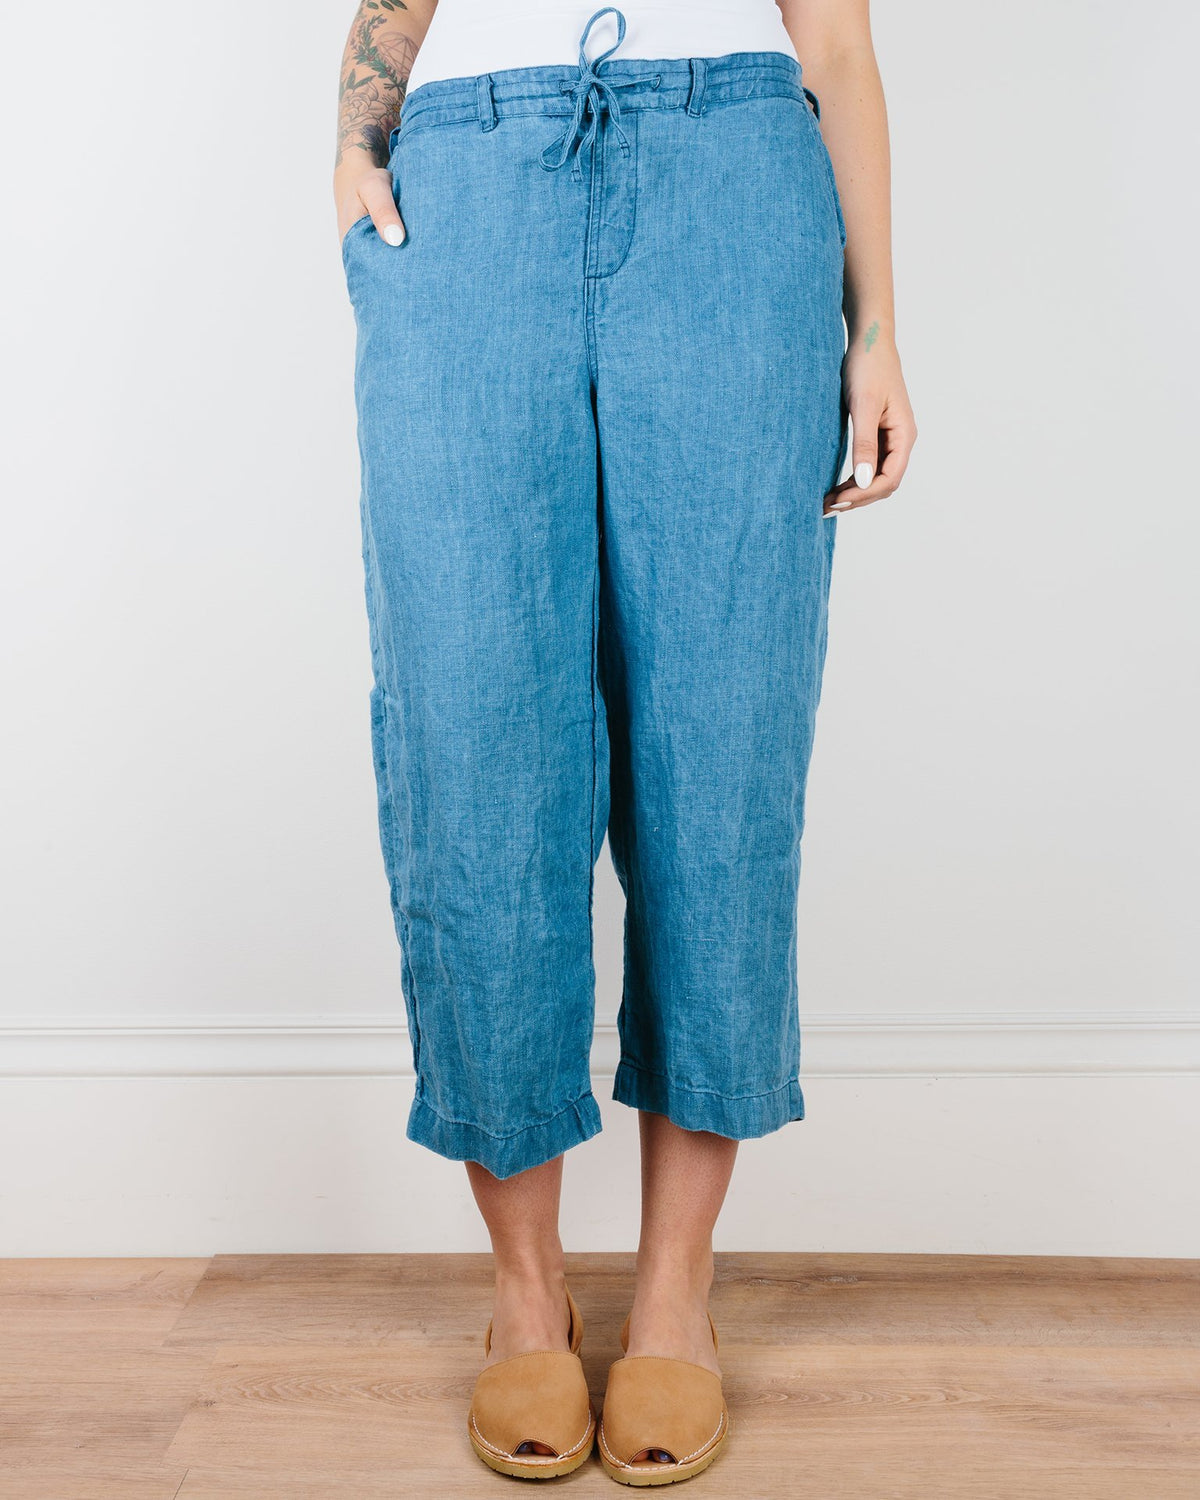 CP Shades Clothing Bleach Indigo Twill / XS Riley Crop Straight Leg Pant in Indigo Twill